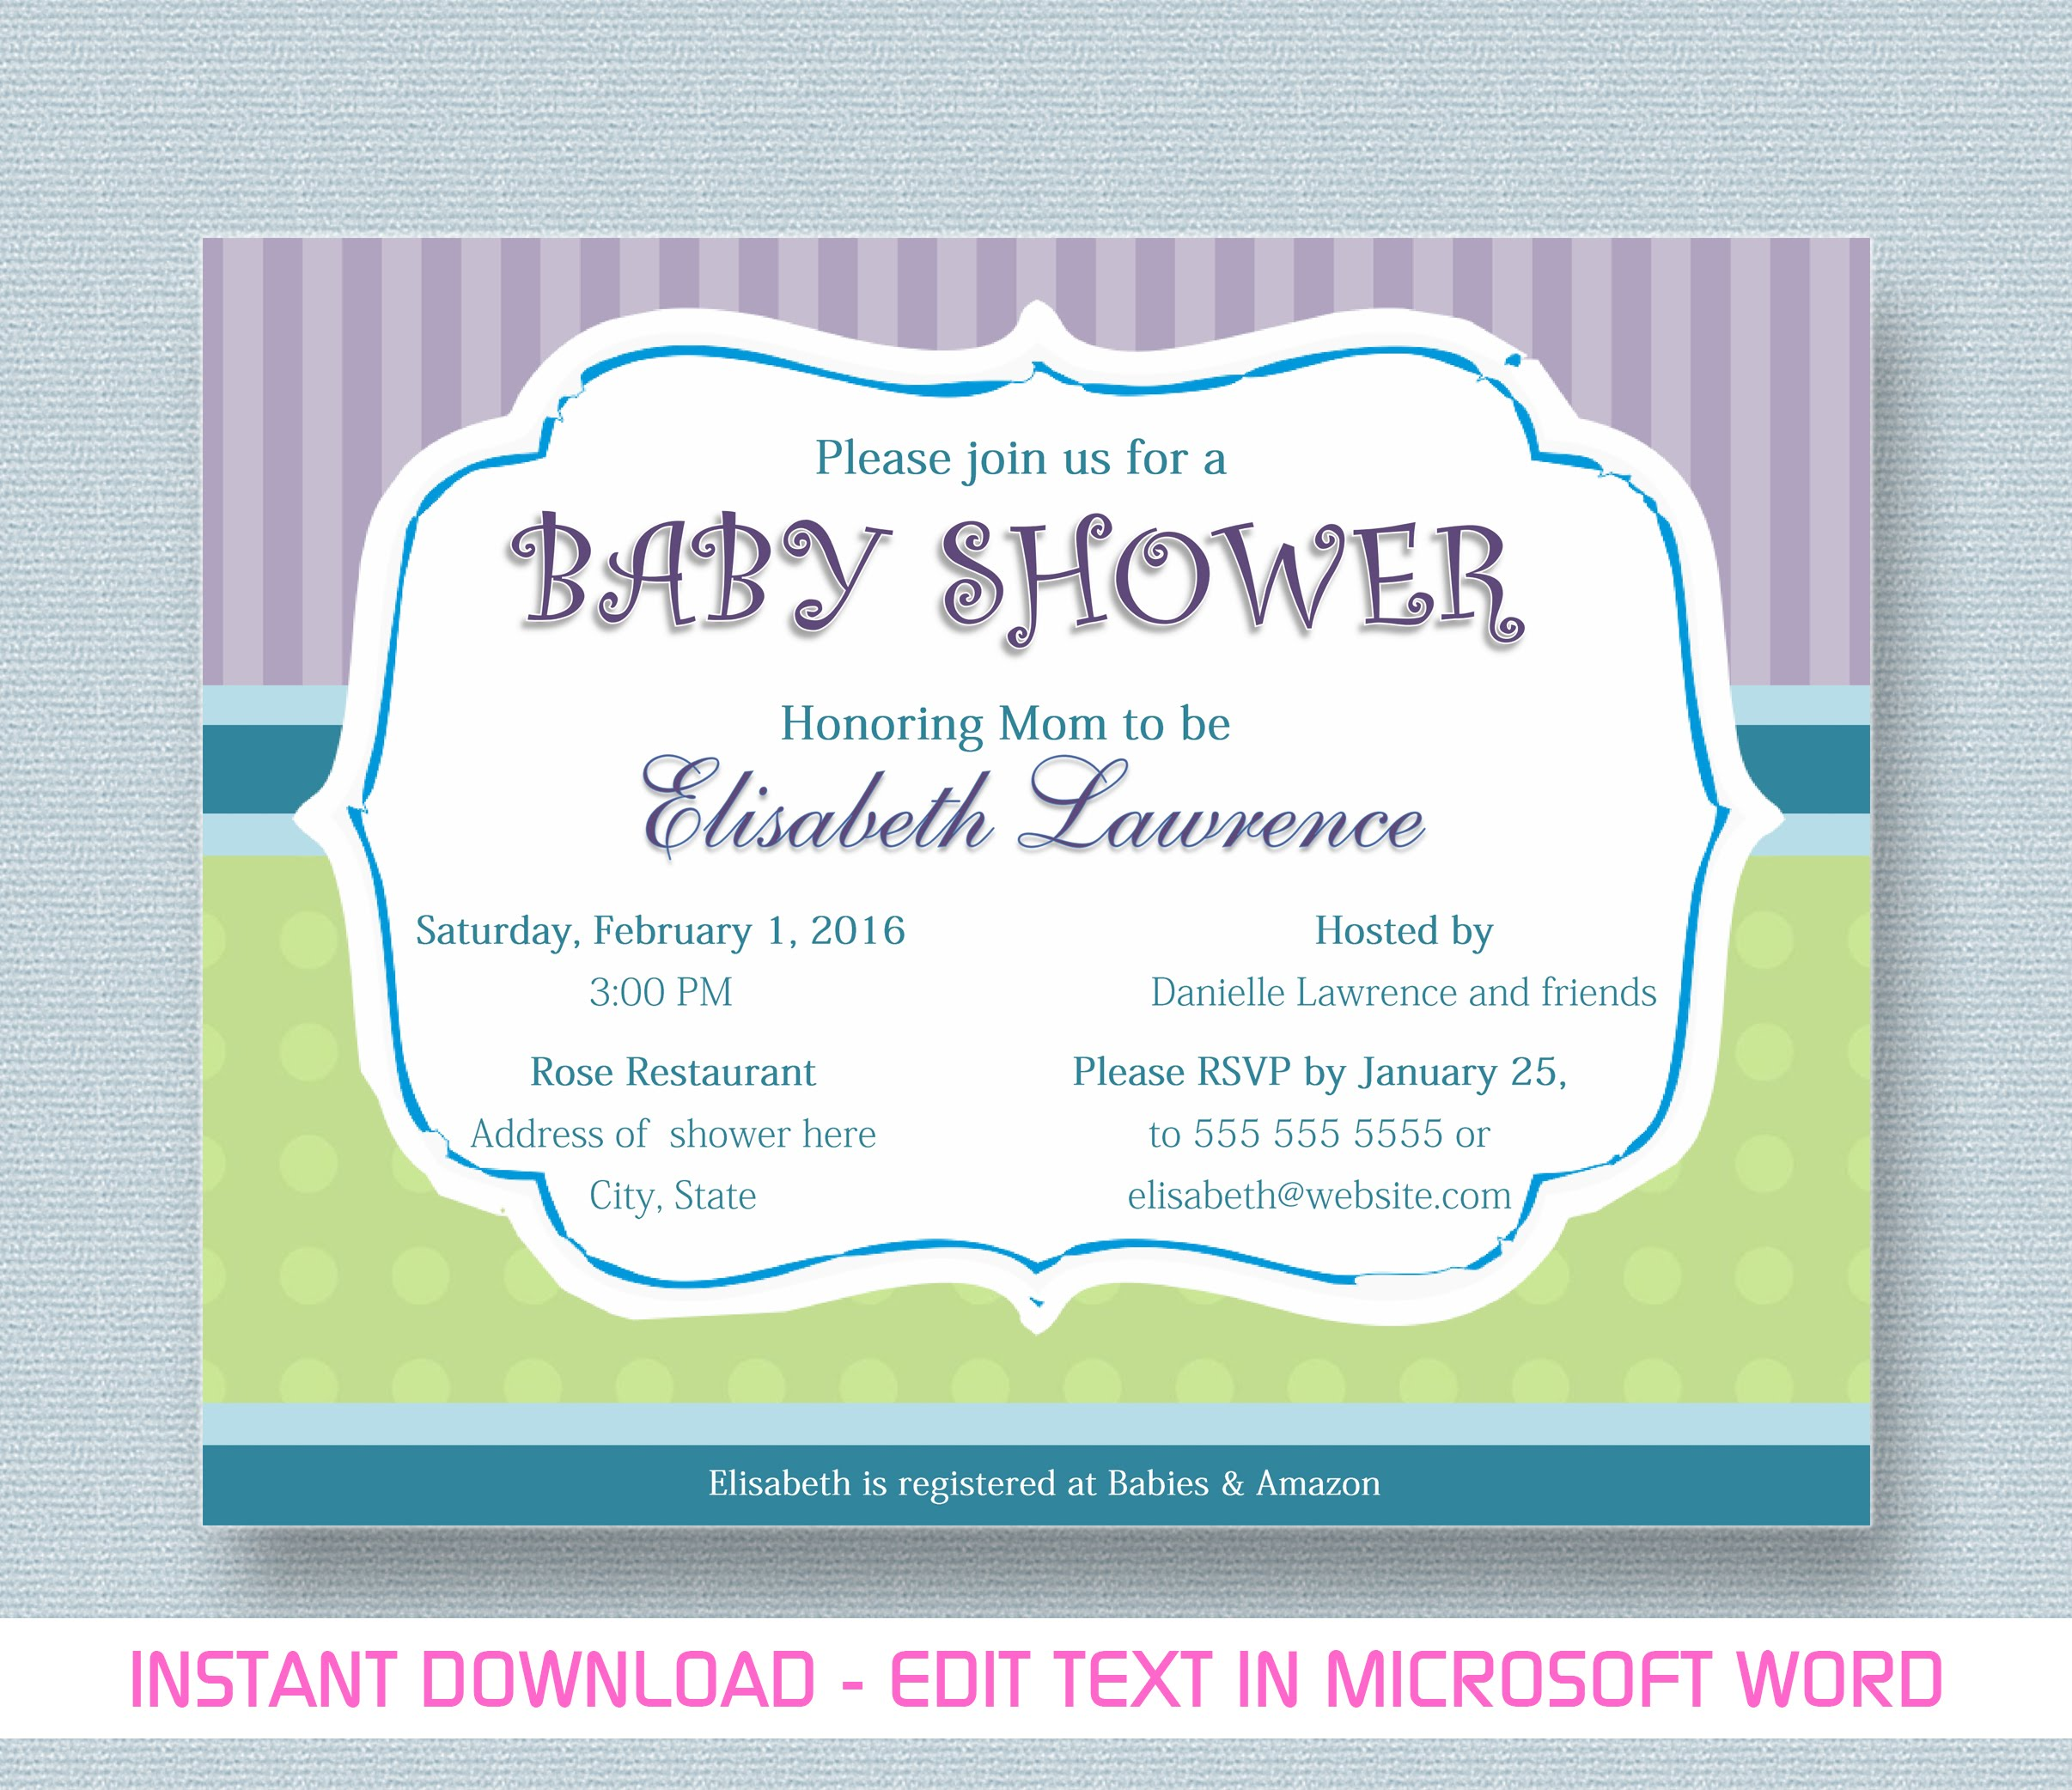 Full Size of Baby Shower:baby Boy Shower Ideas Free Printable Baby Shower Games Free Baby Shower Ideas Unique Baby Shower Decorations Baby Girl Party Plates Baby Girl Themes Elegant Baby Shower Decorations Baby Girl Themes For Baby Shower